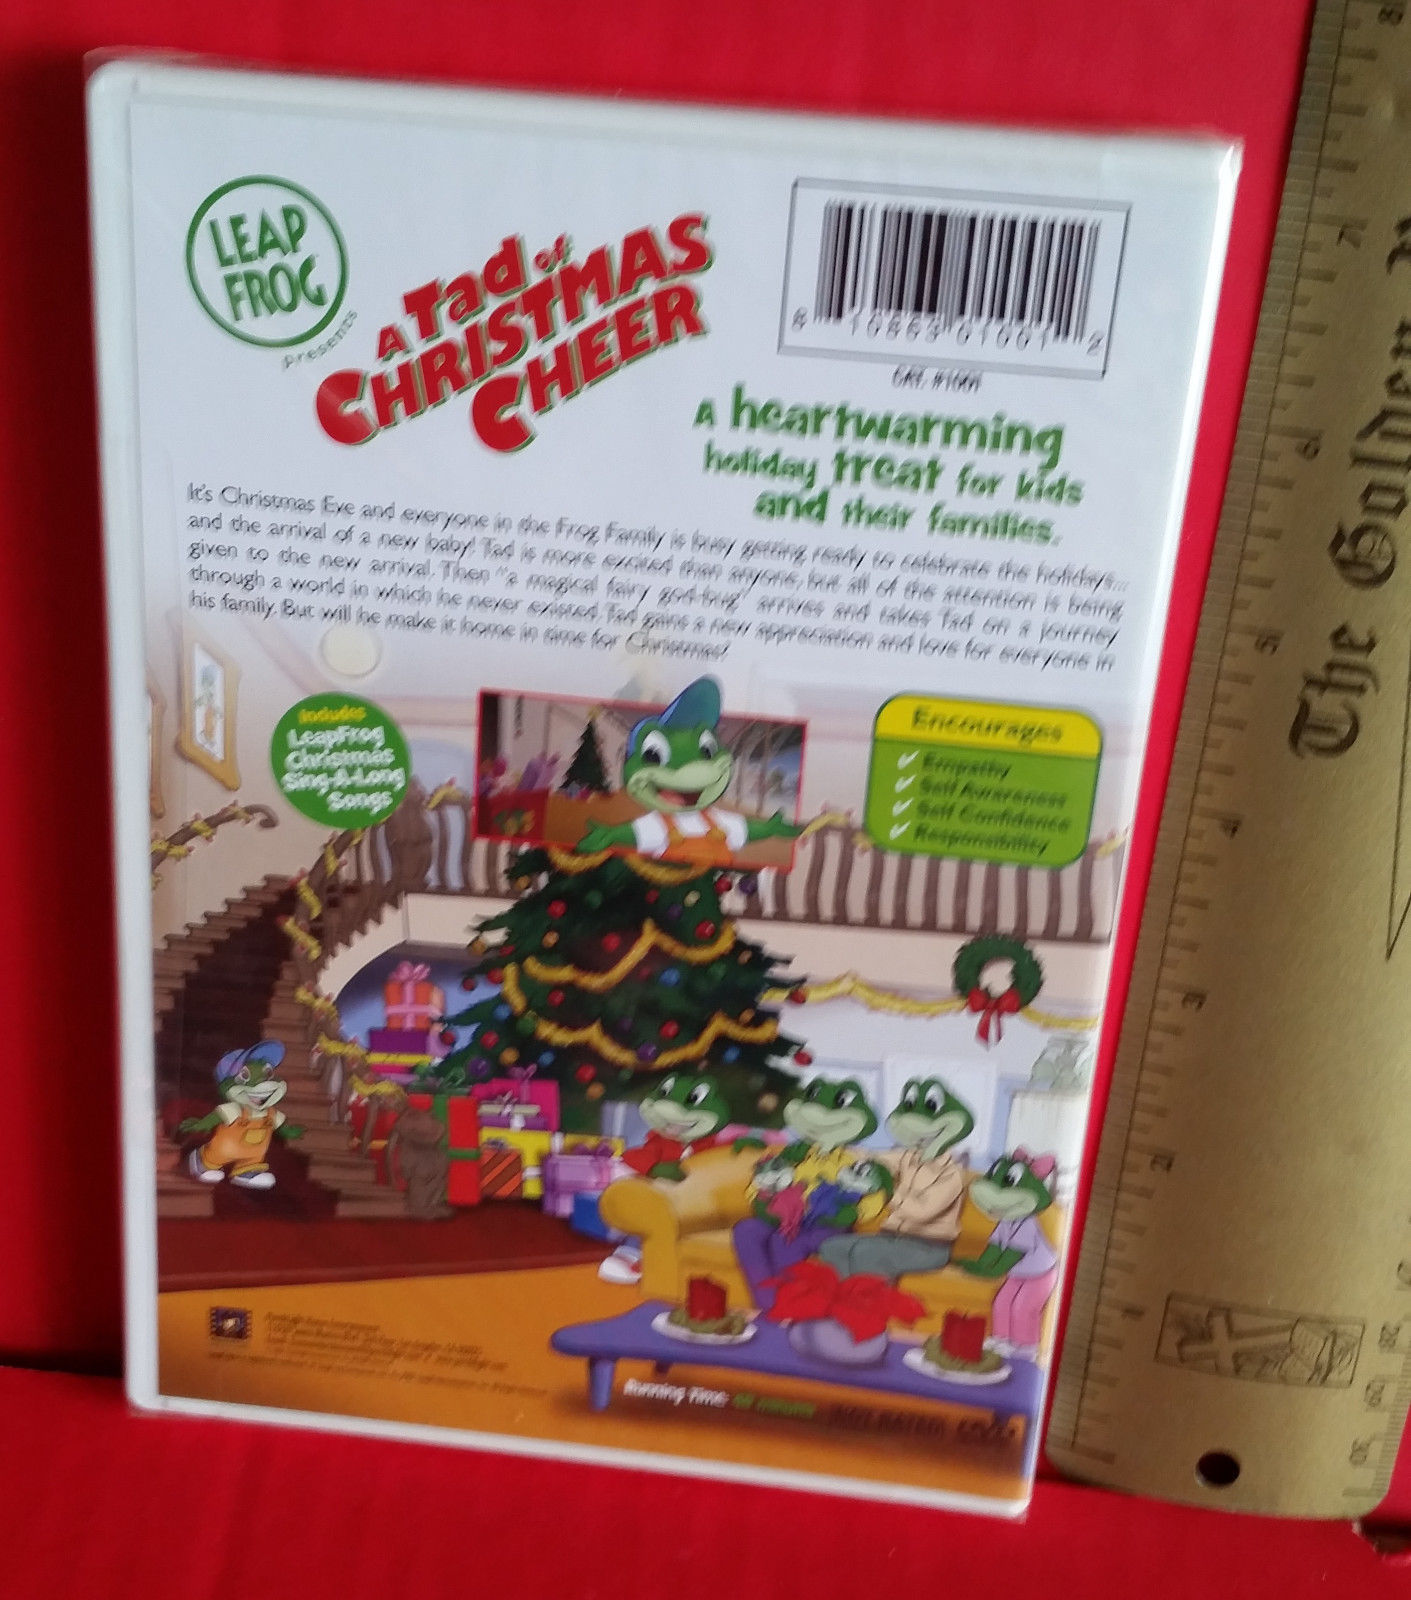 Leapfrog A Tad Of Christmas Cheer.Education Holiday Video Dvd A Tad Of And 11 Similar Items